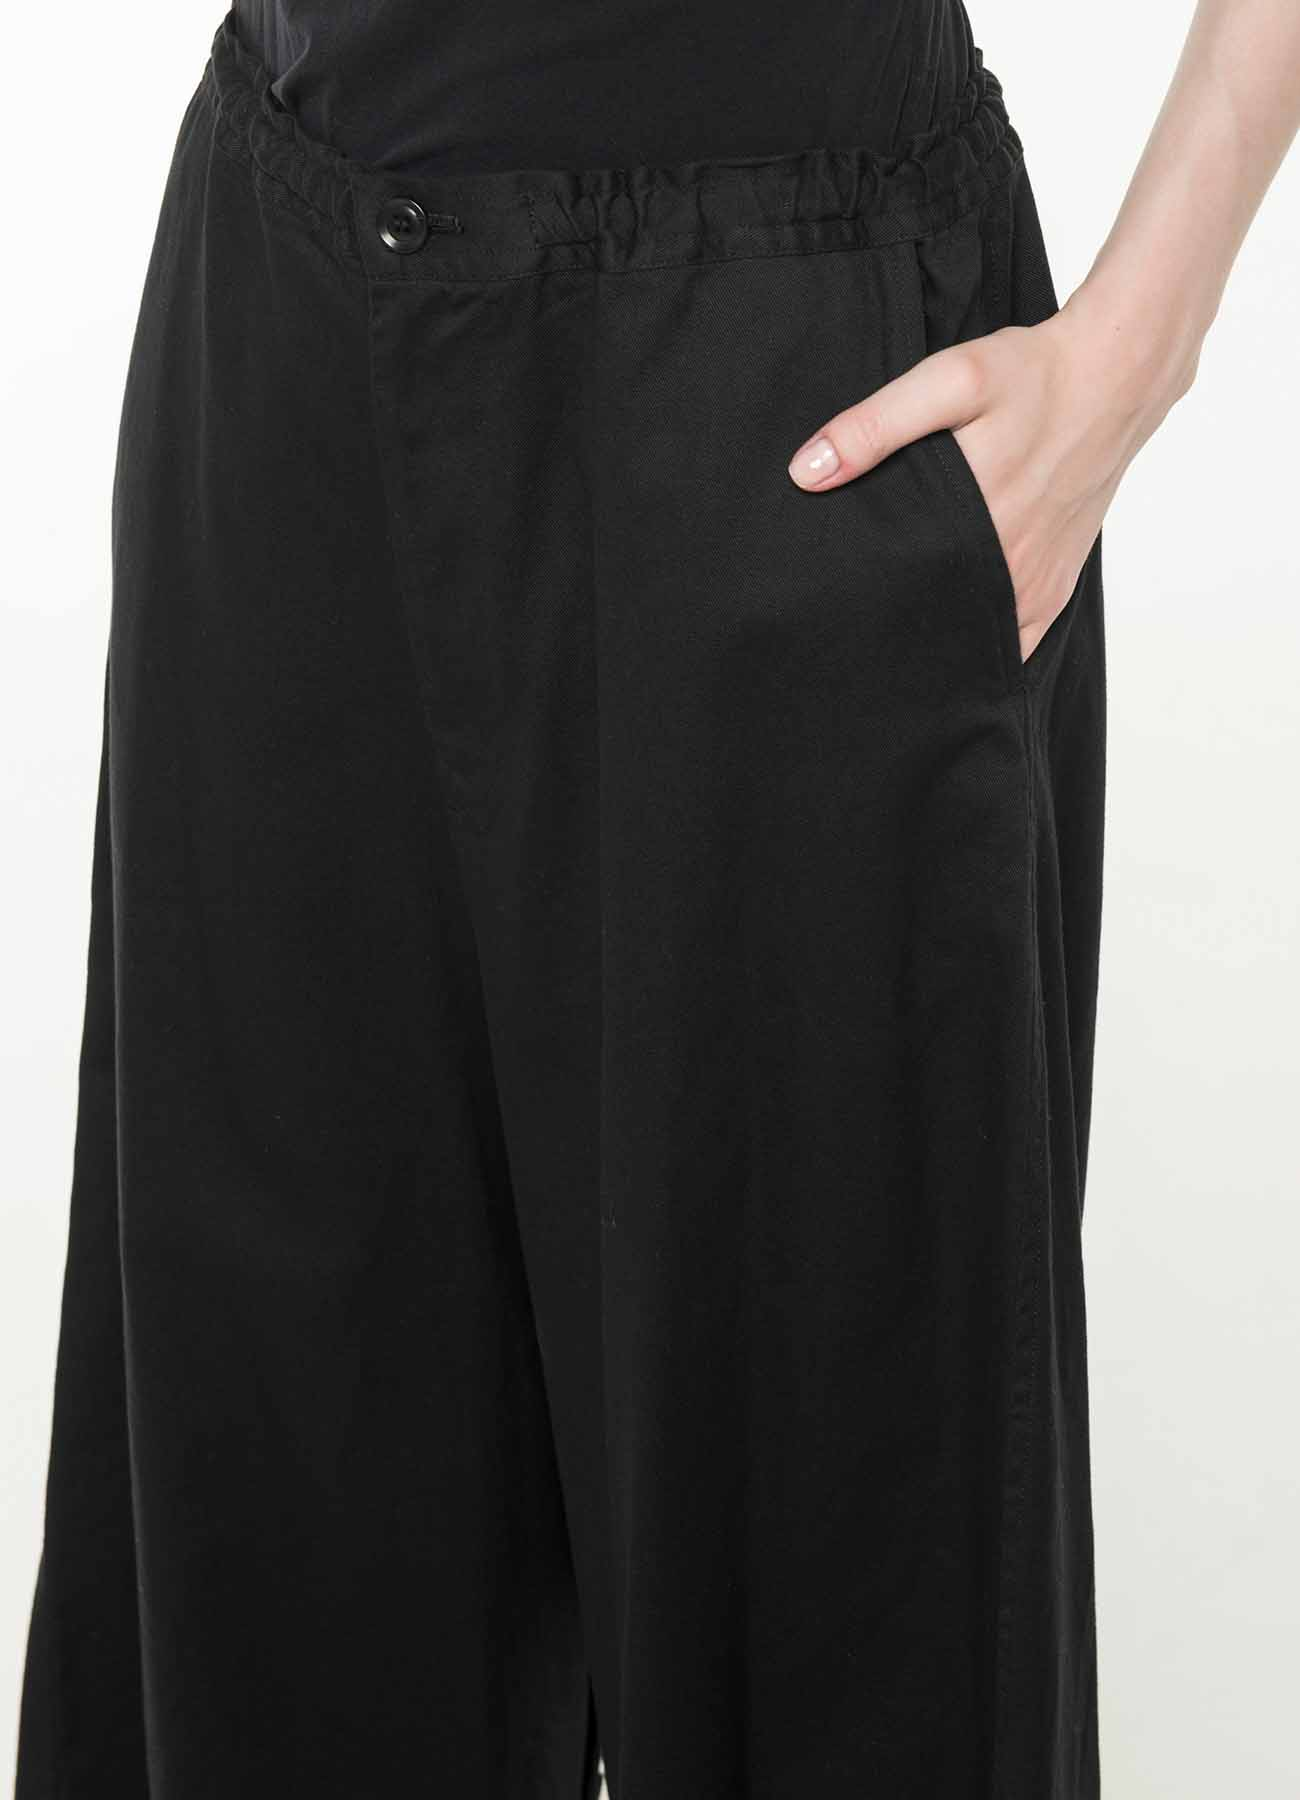 TWILL CROTCH BUTTON OPEN PANTS